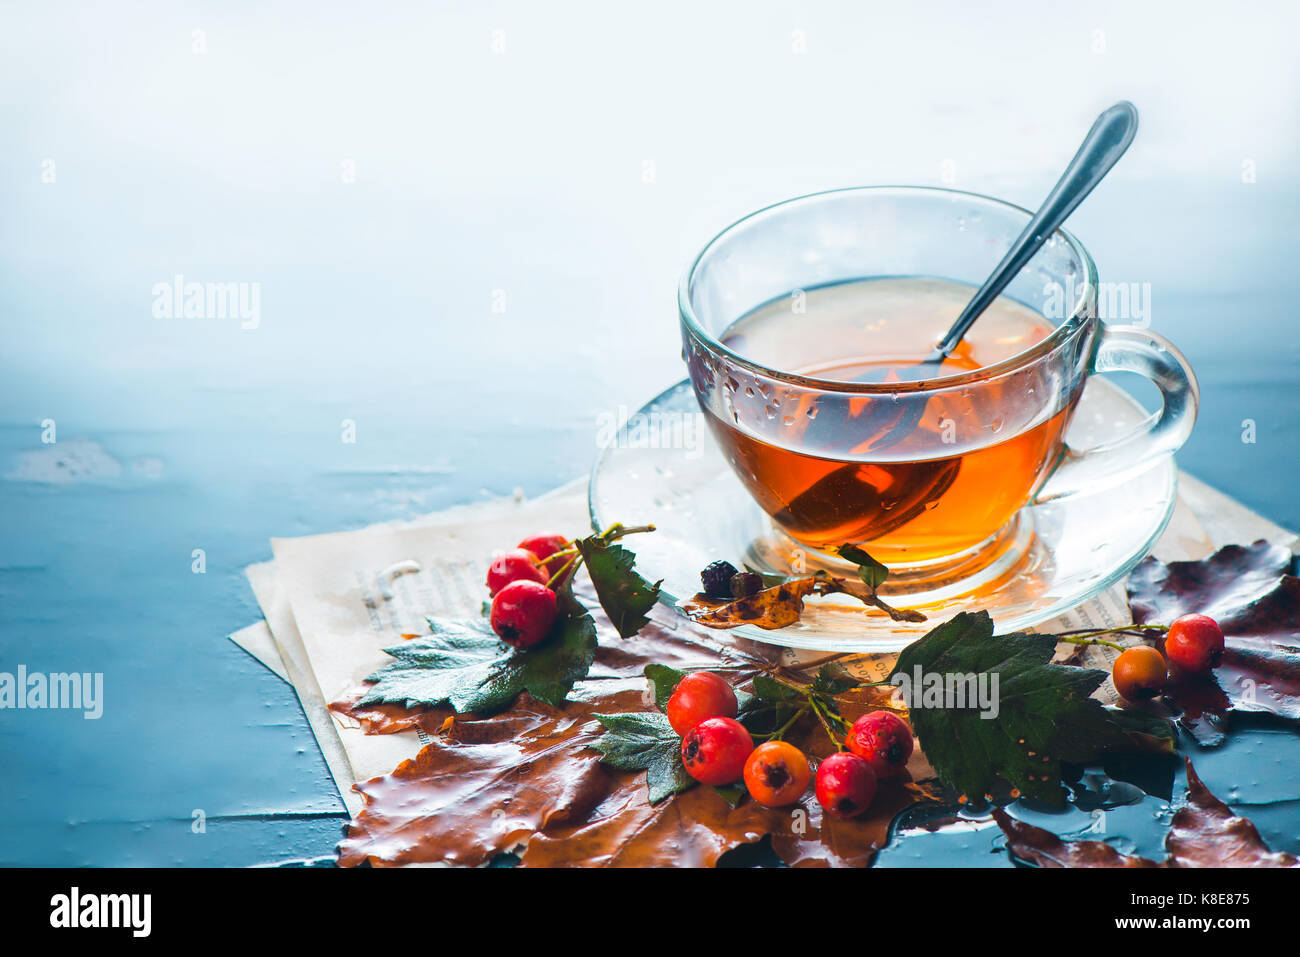 Glass tea cup in autumn still life with rain, leaves, book pages and berries on a wet background - Stock Image